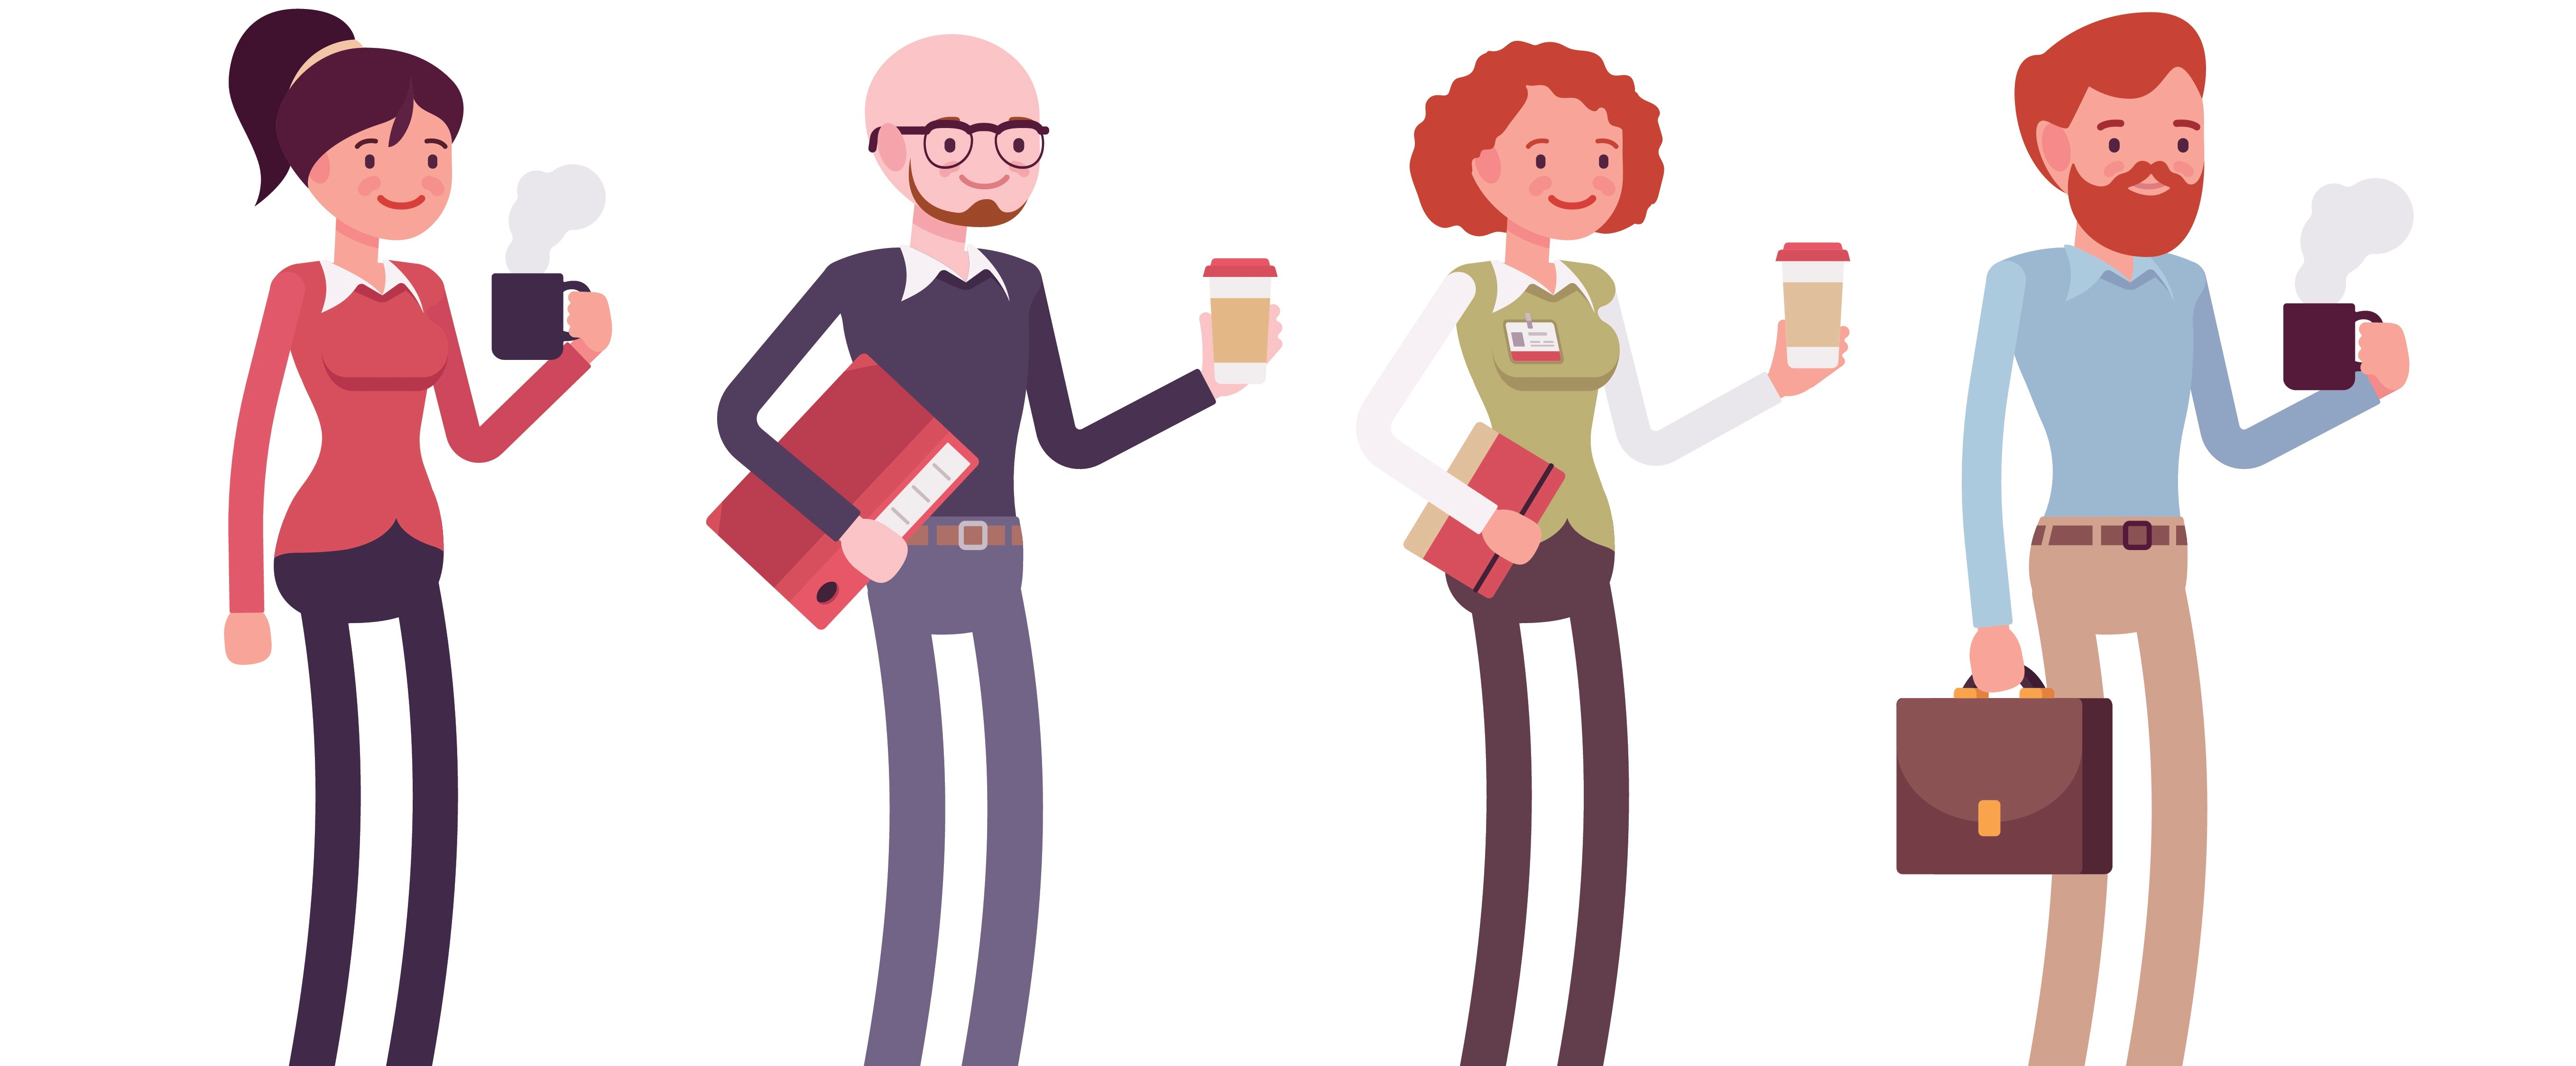 8 Personalities to Look for When Assembling a Content Team